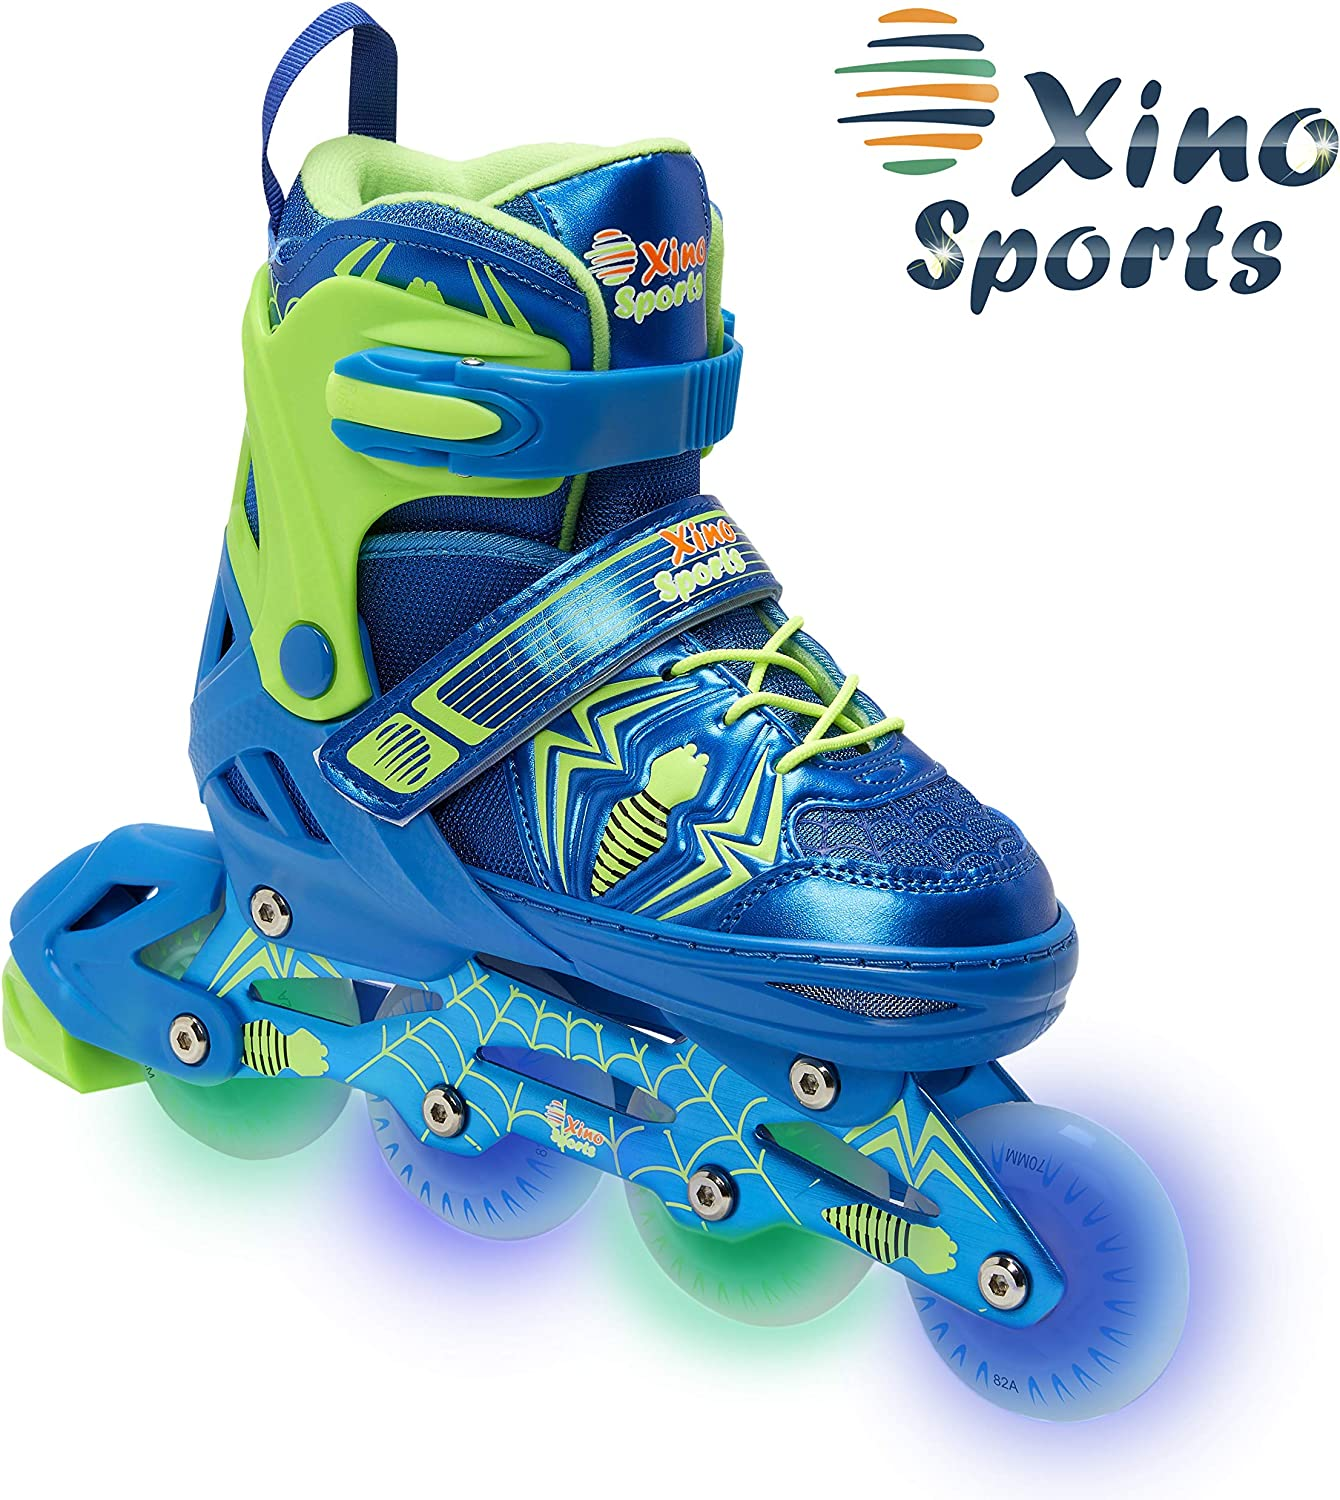 Xino Sports Adjustable Inline Roller Skates – for Growing Girls and Boys, Featuring Illuminating LED Wheels, 1 Year Warranty and a Life Time Support